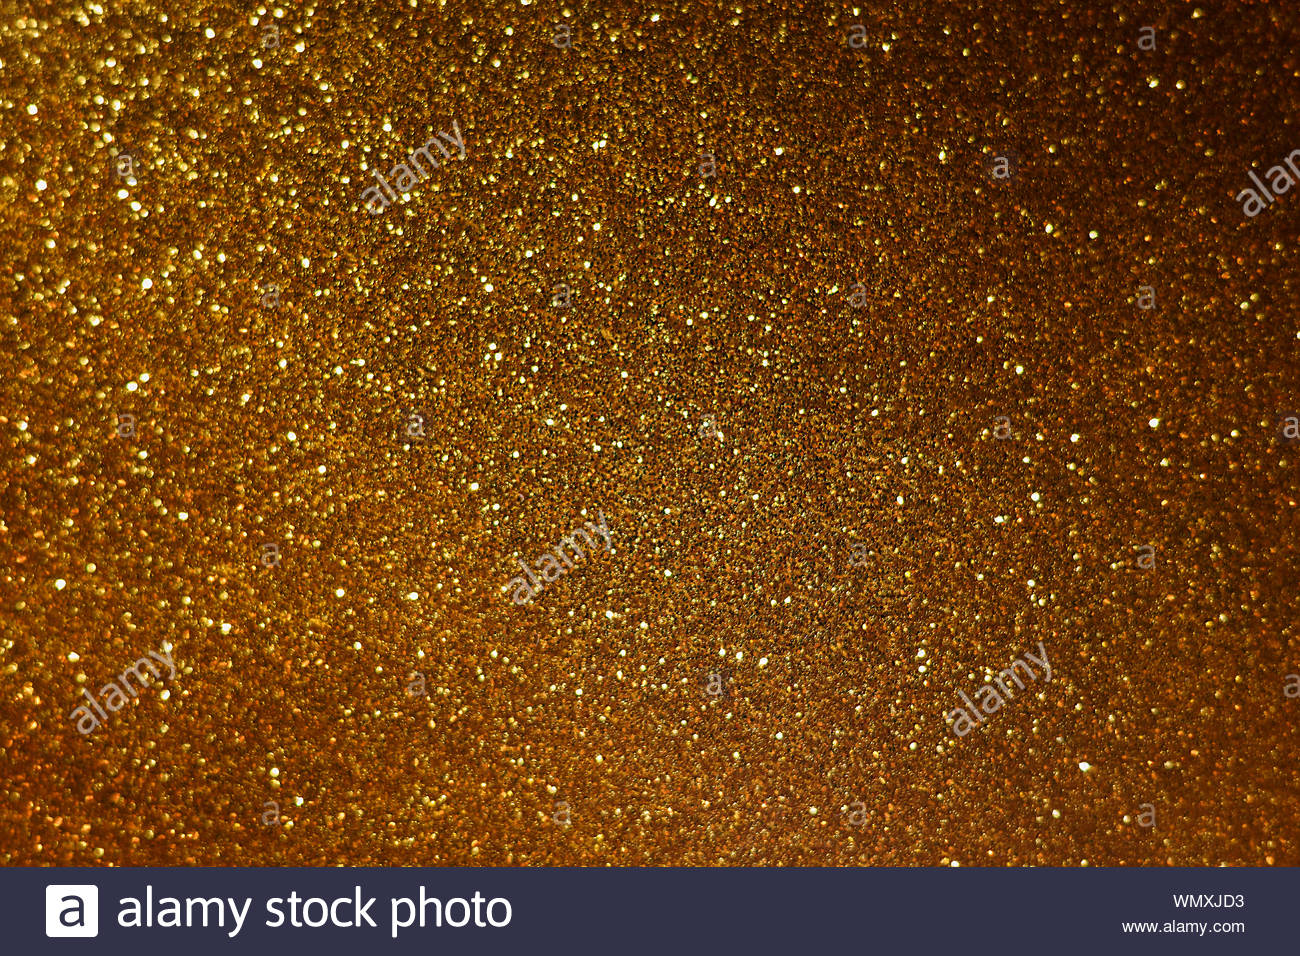 Sparkly glitter background (photograph) Stock Photo